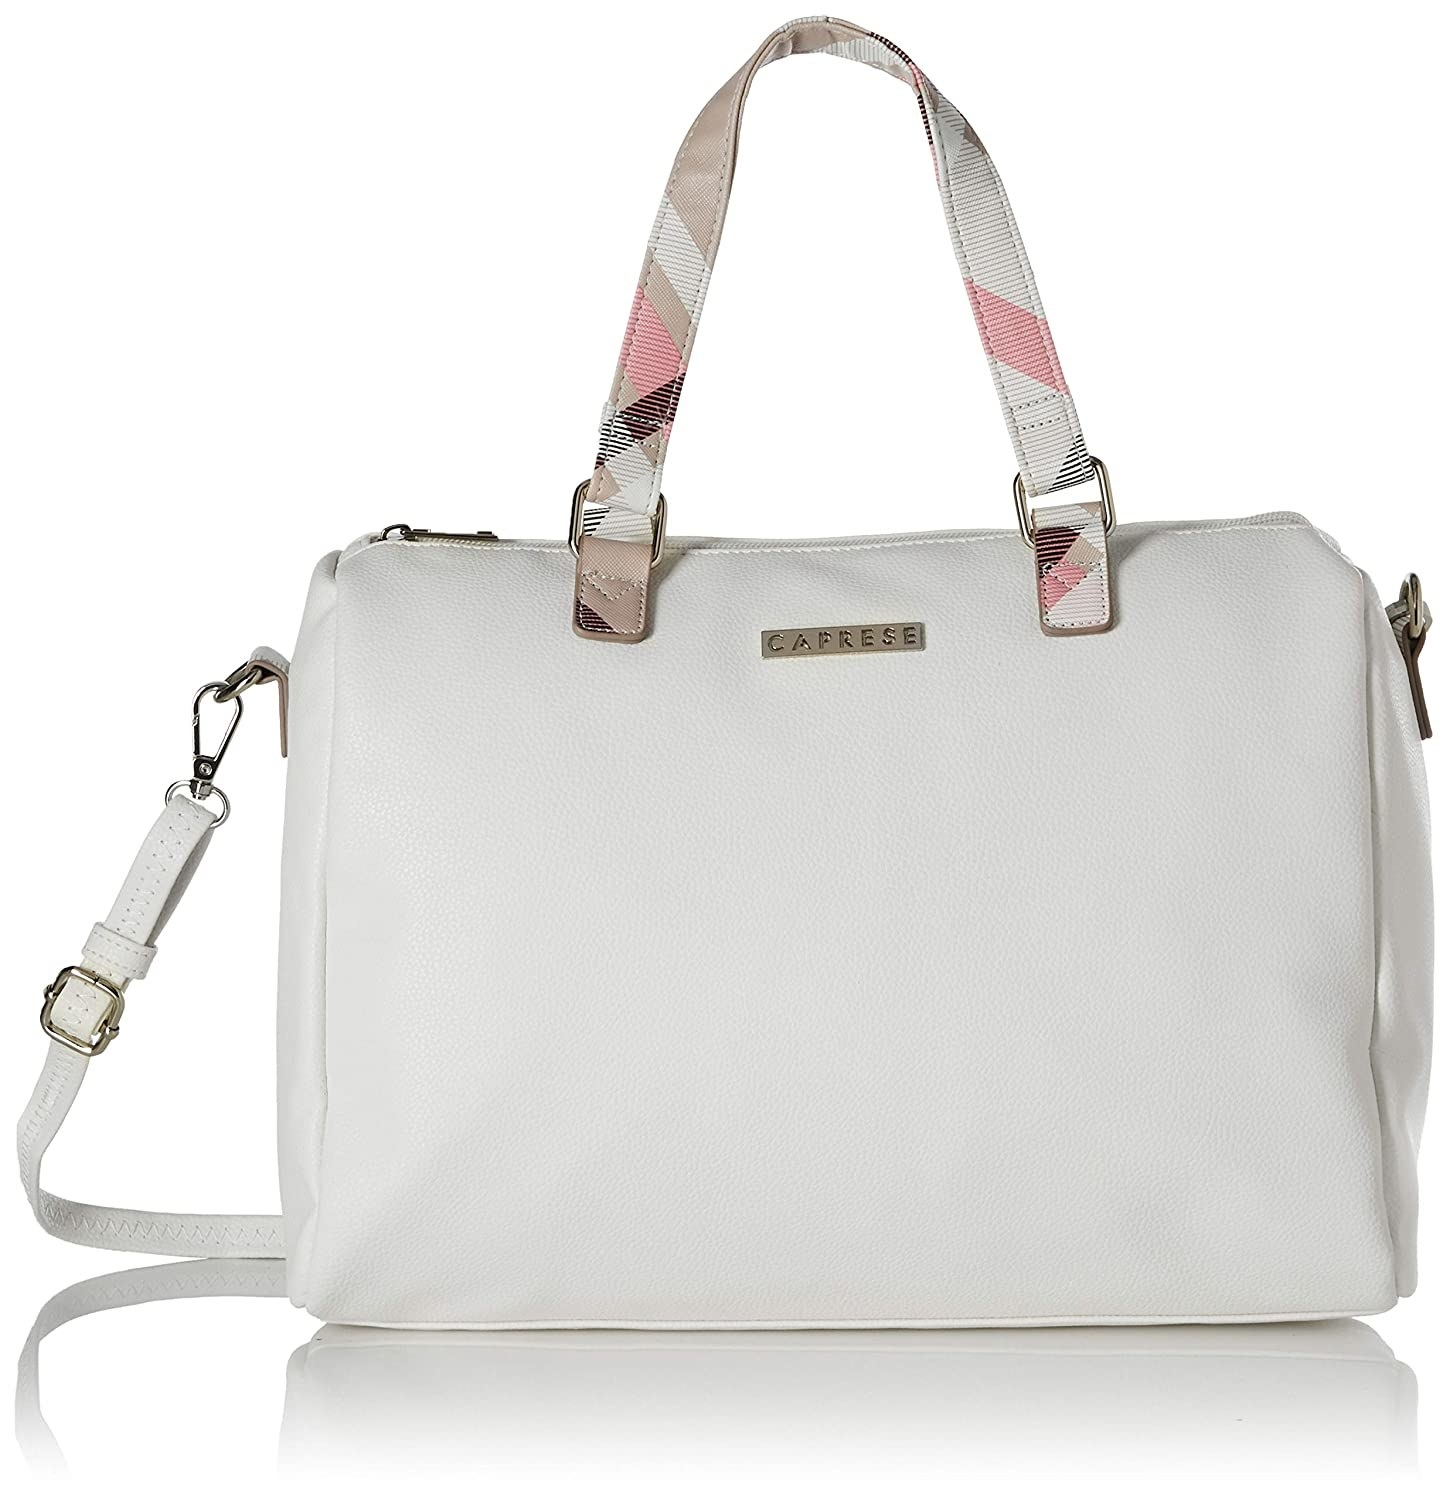 A white satchel-style handbag with patterned pink handles